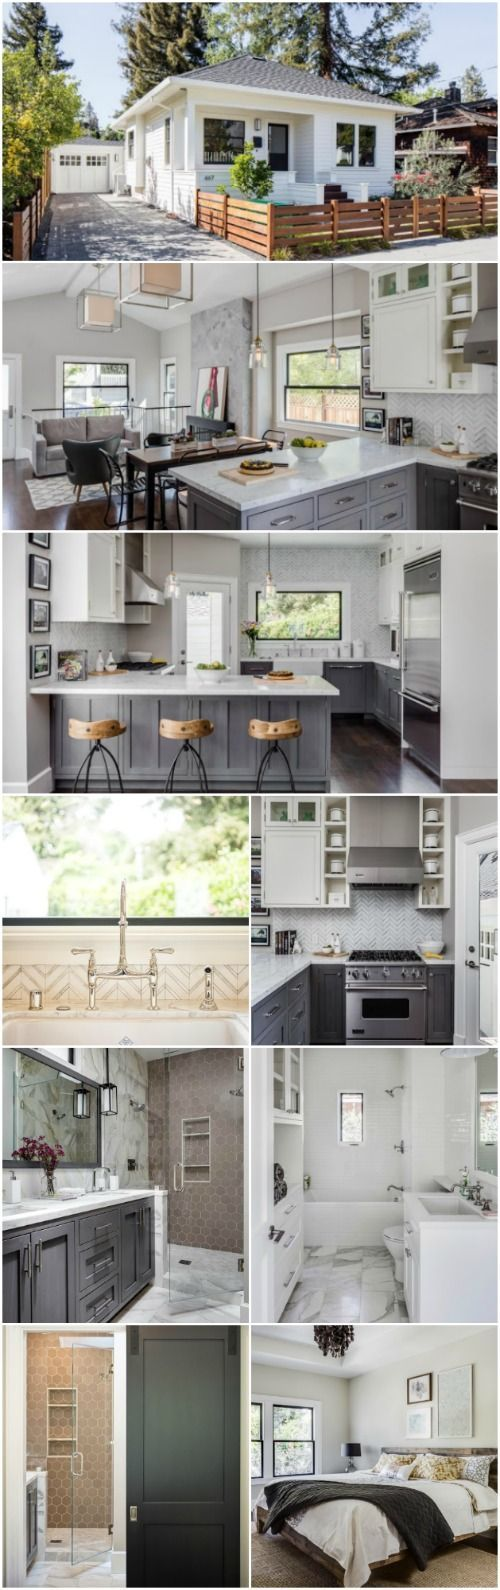 Californian Interior Designer Designs Dreamy Tiny House in Napa Valley    Lindsay Chambers has created a. Best 25  Small house interior design ideas on Pinterest   Small